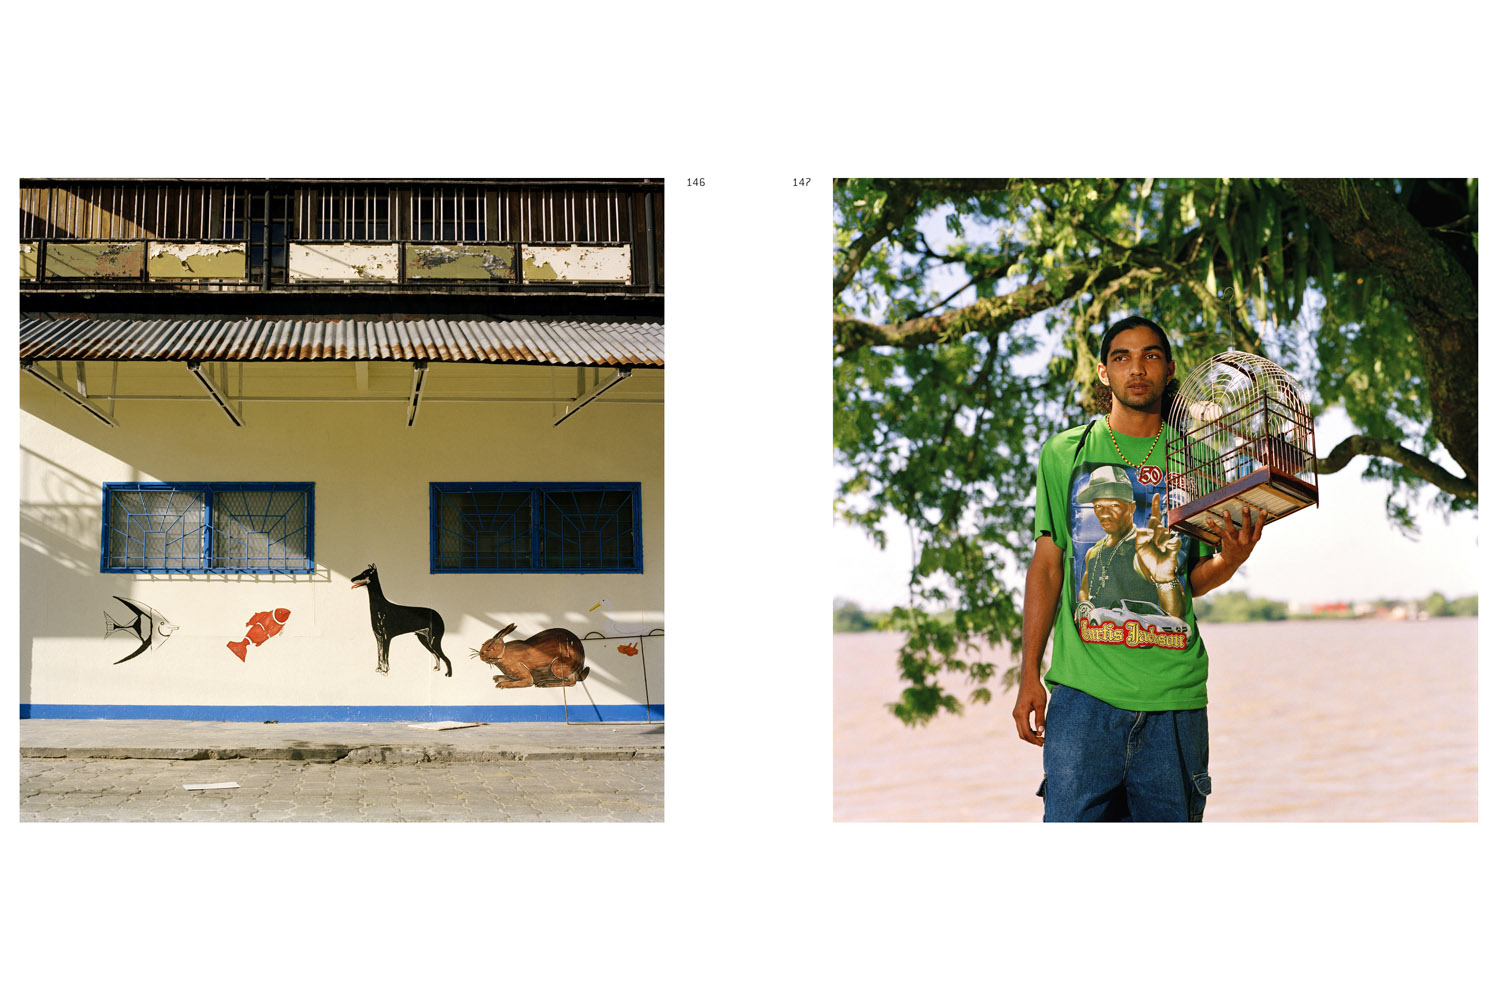 Cityscapes + Birdmen by Jacquie Maria Wessels